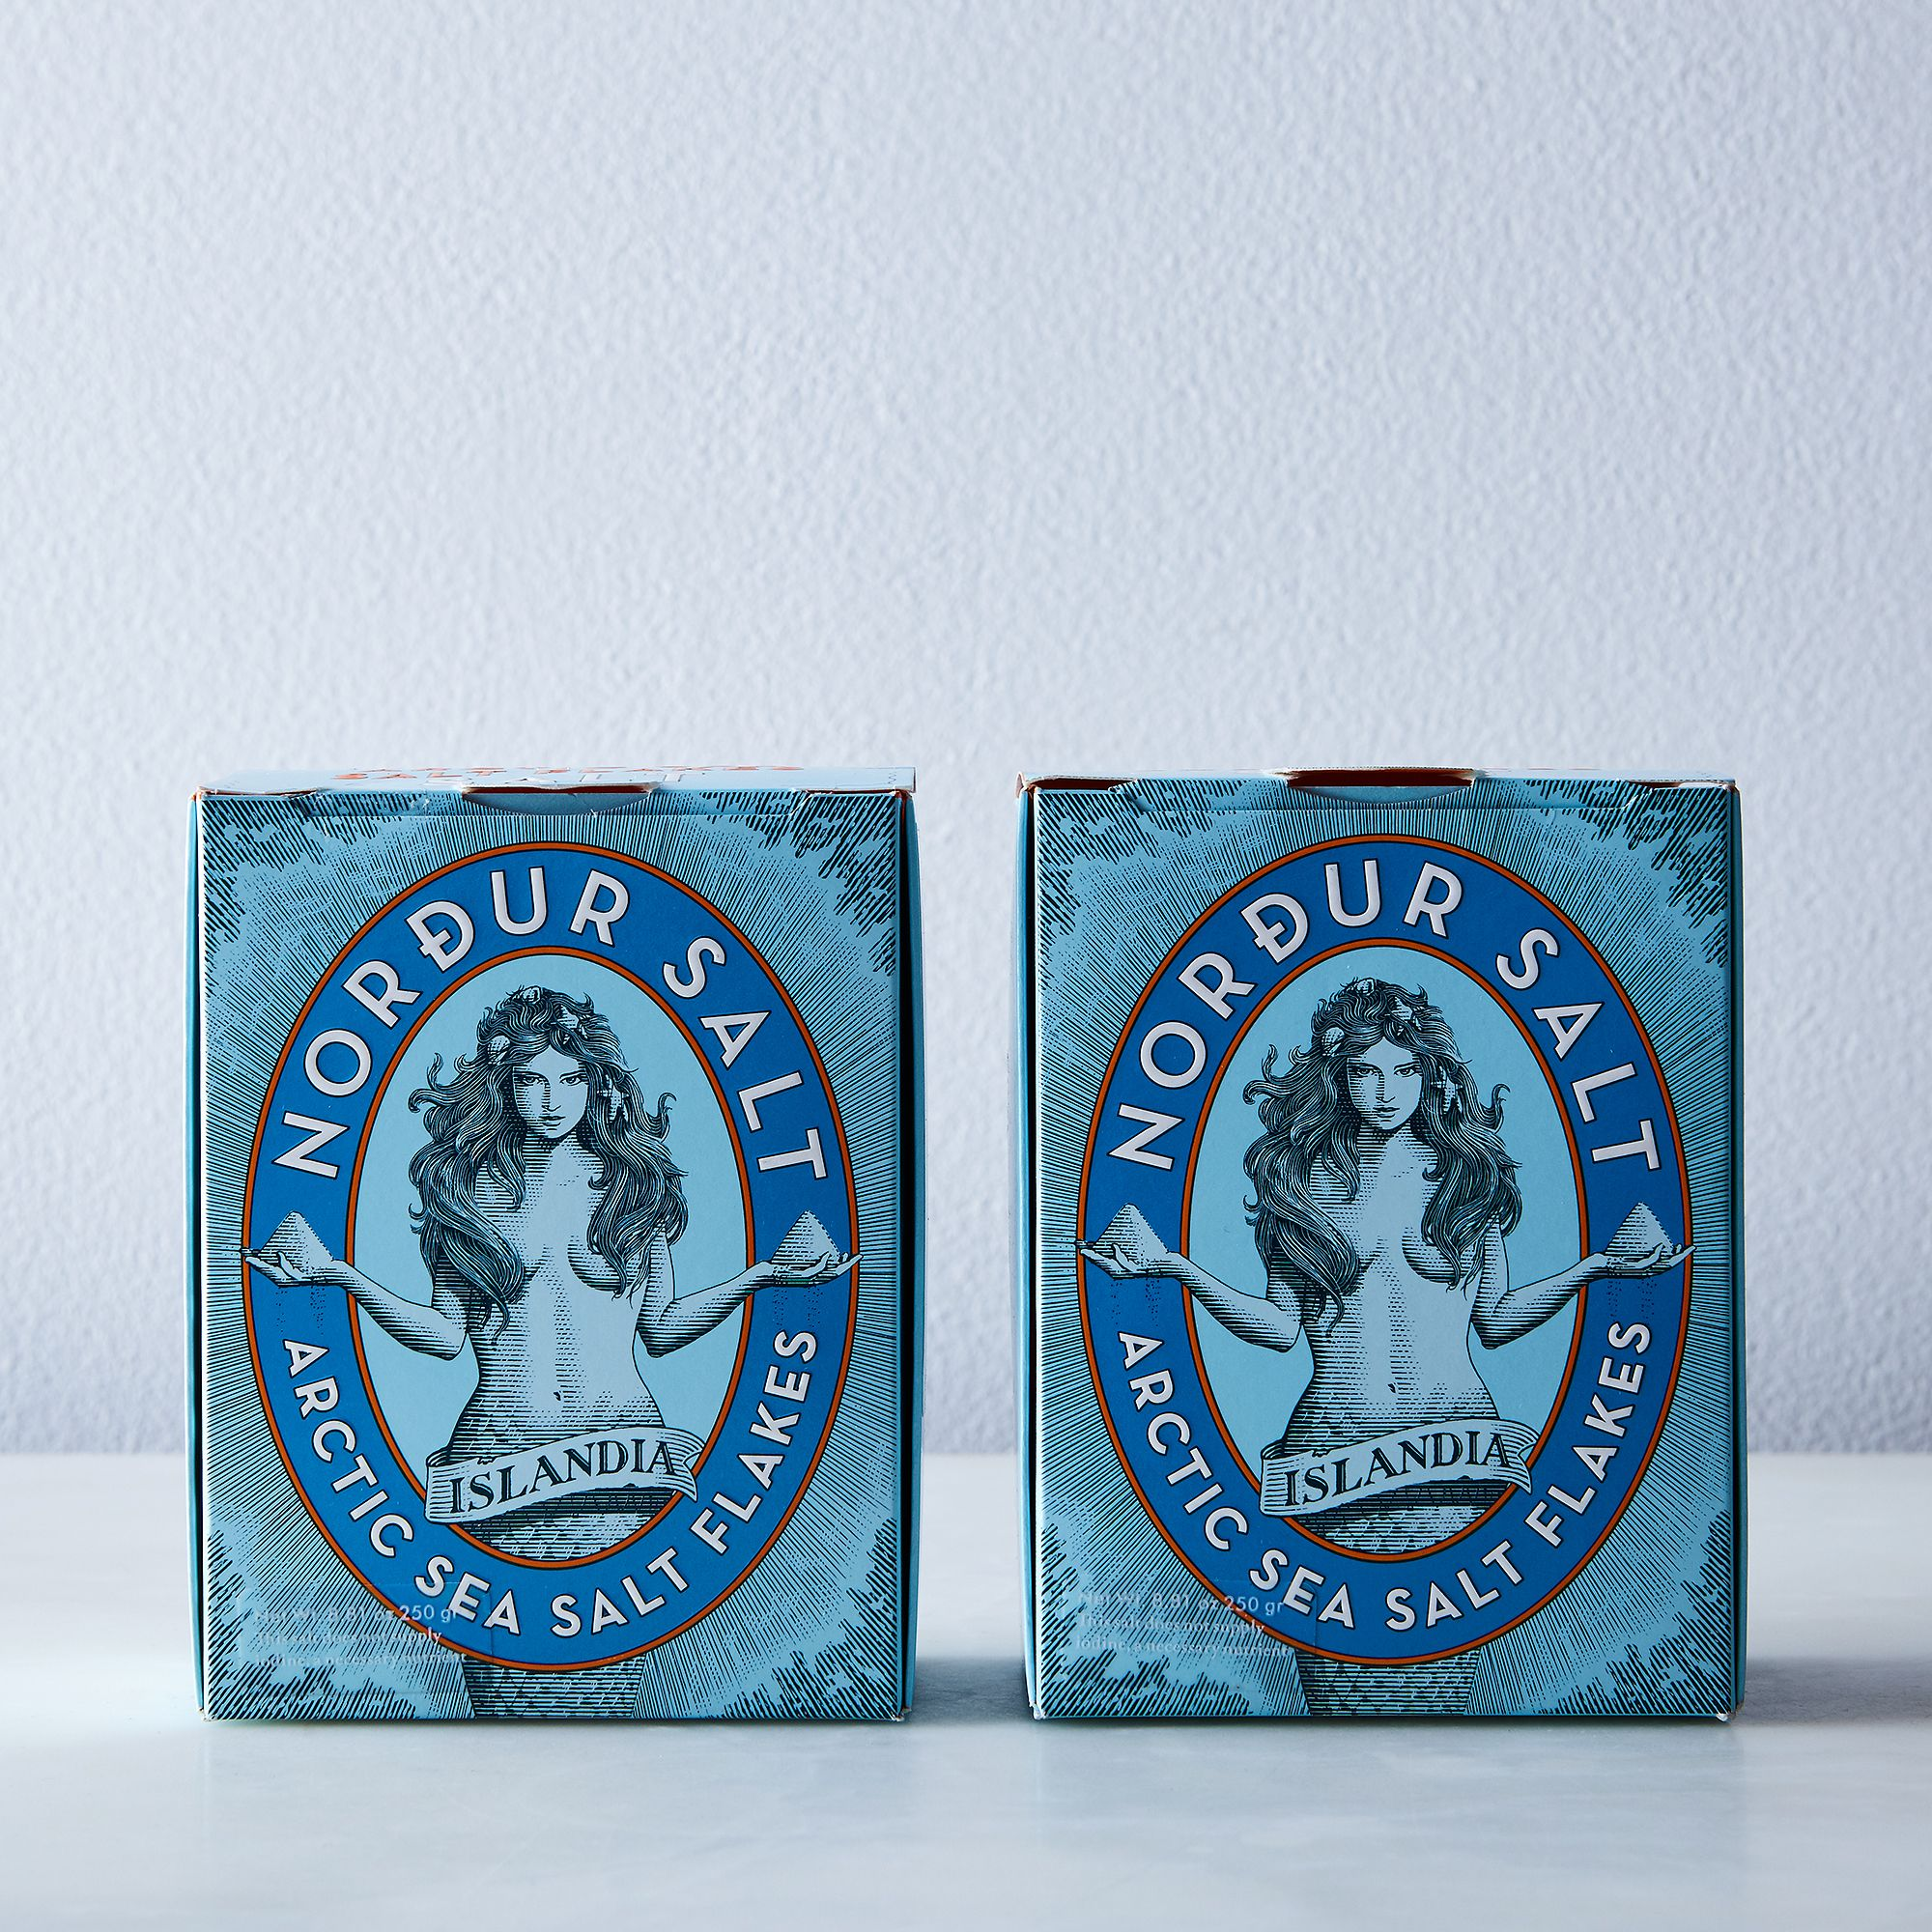 Nordur Icelandic Sea Salt (2-Pack)